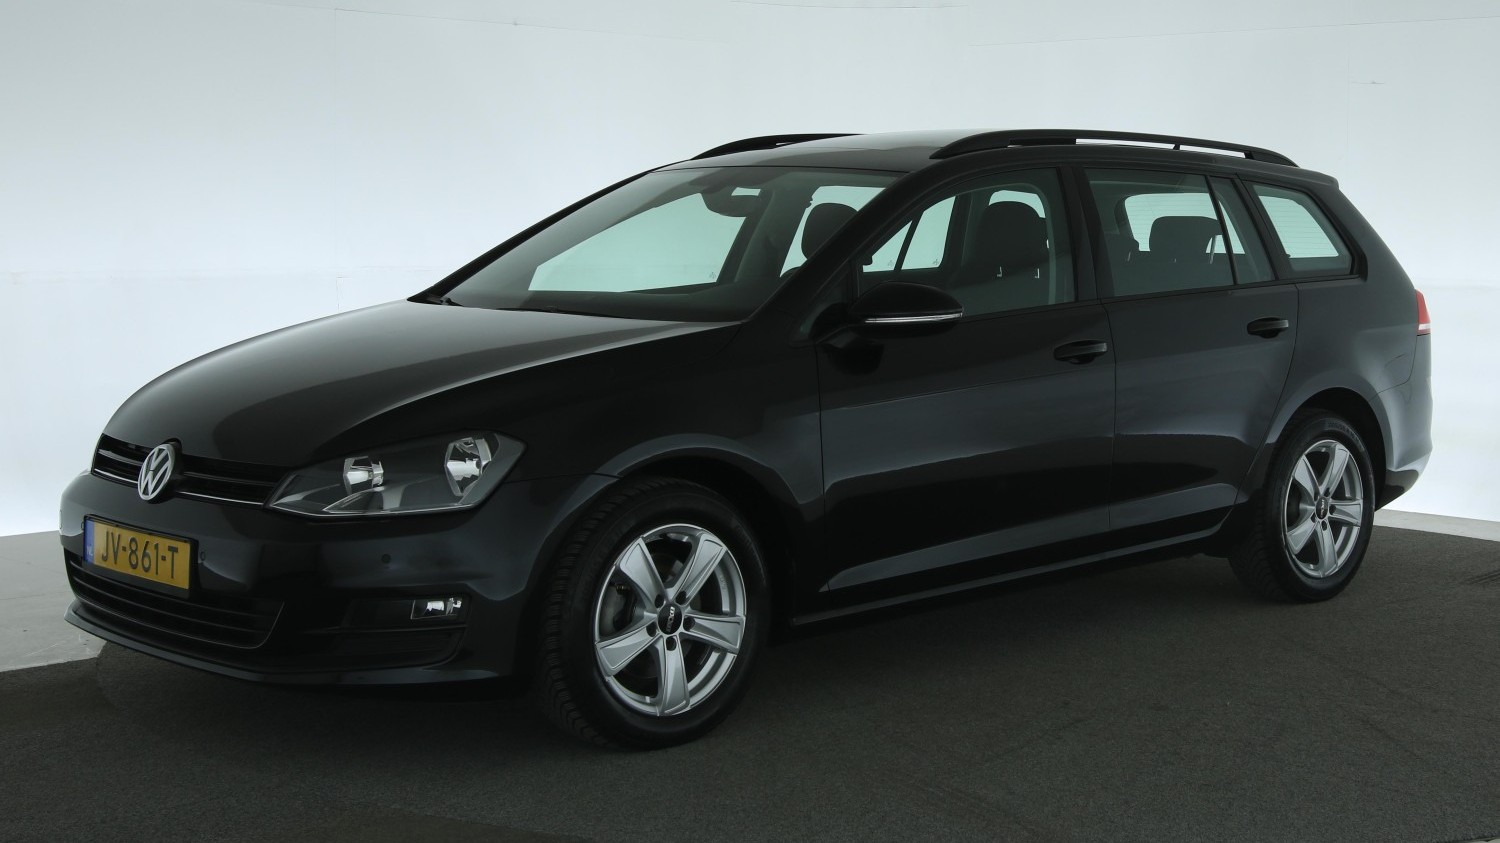 Volkswagen Golf Station 2016 JV-861-T 1